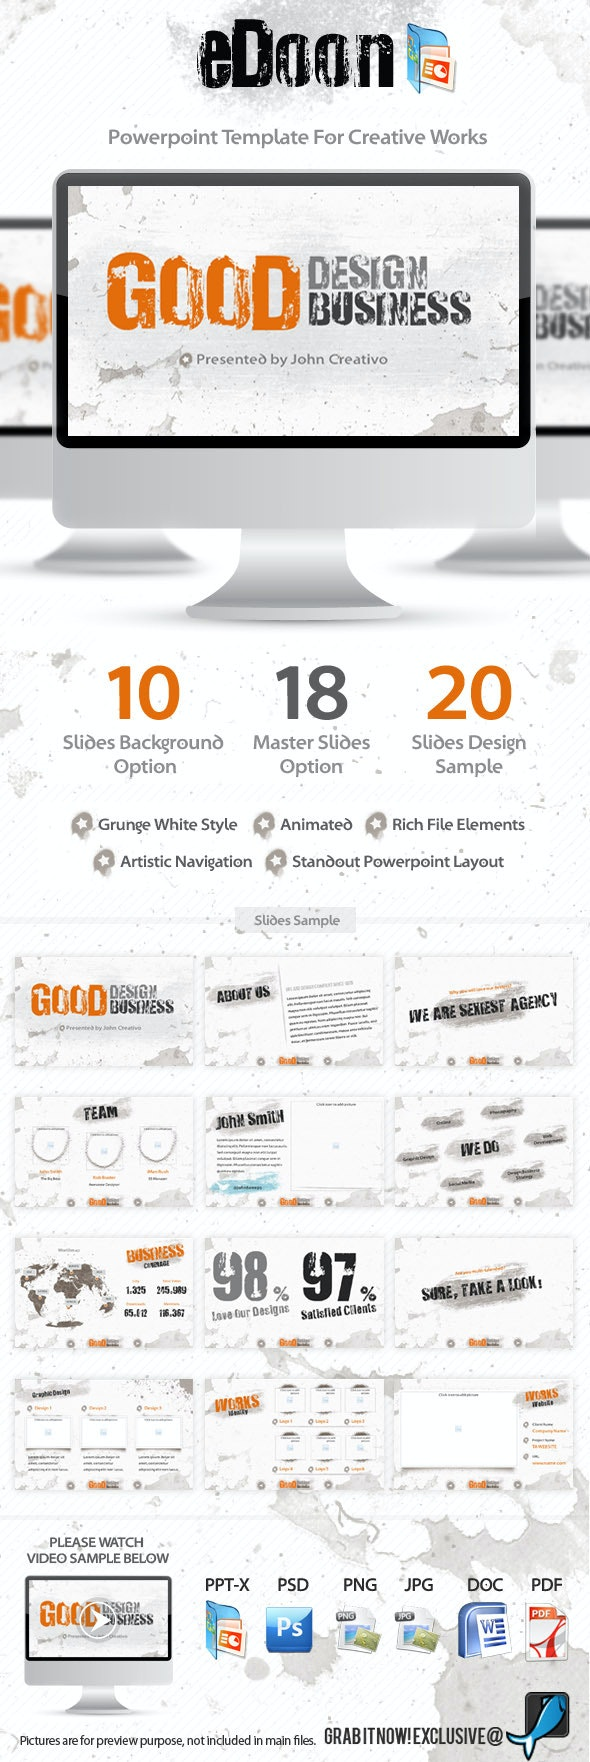 eDoon - Powerpoint Template For Creative Works  - PowerPoint Templates Presentation Templates